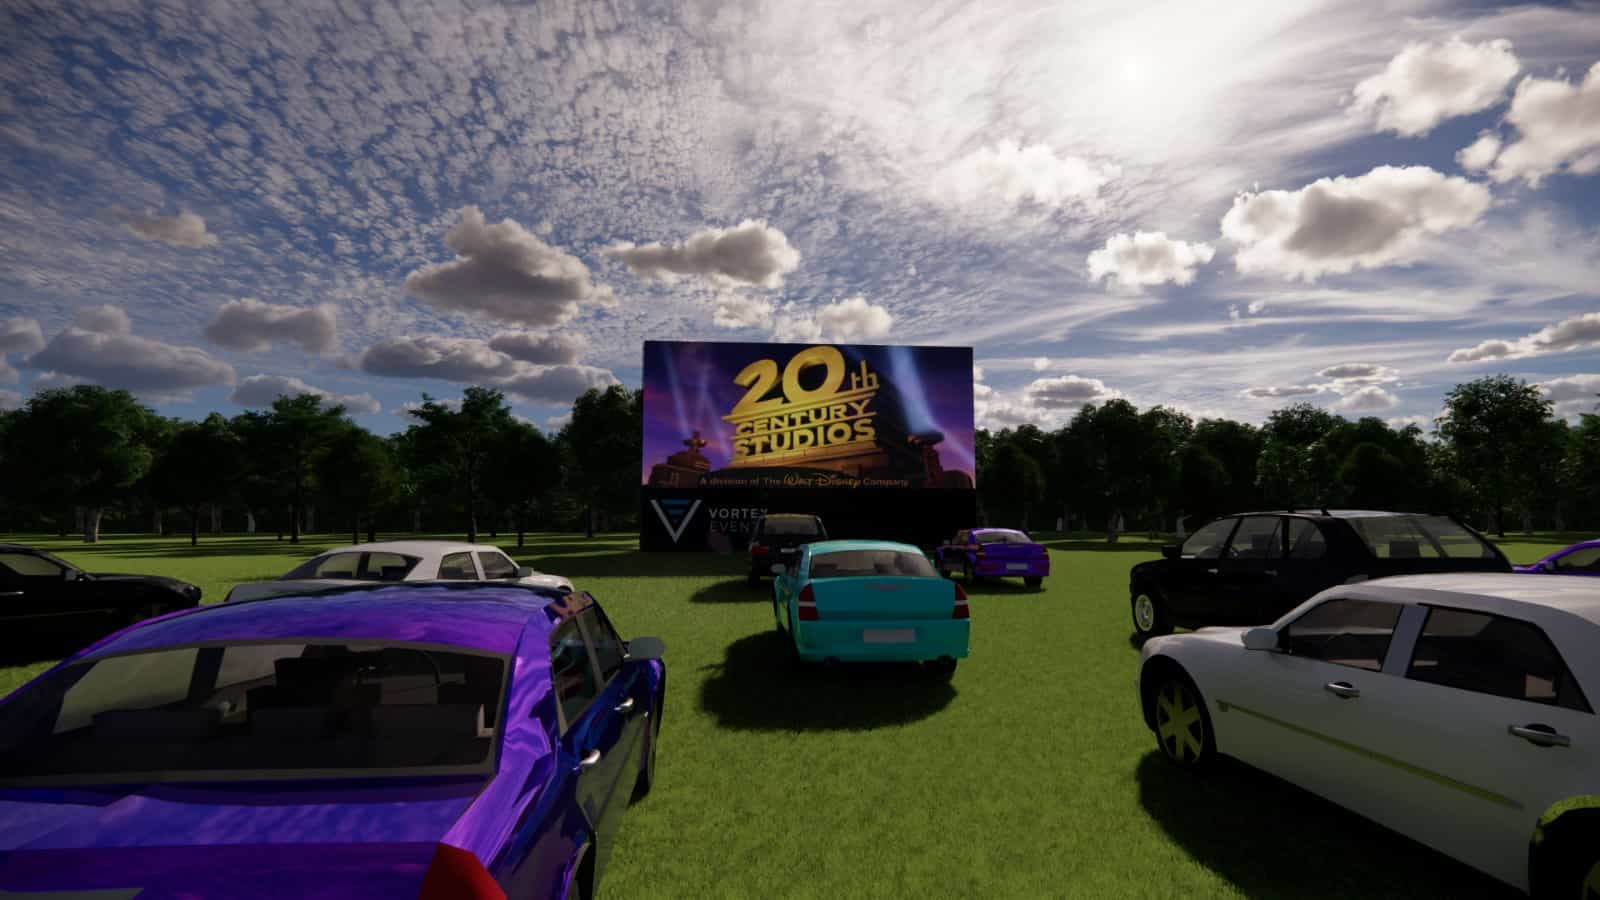 Drive in cinema Vortex Events